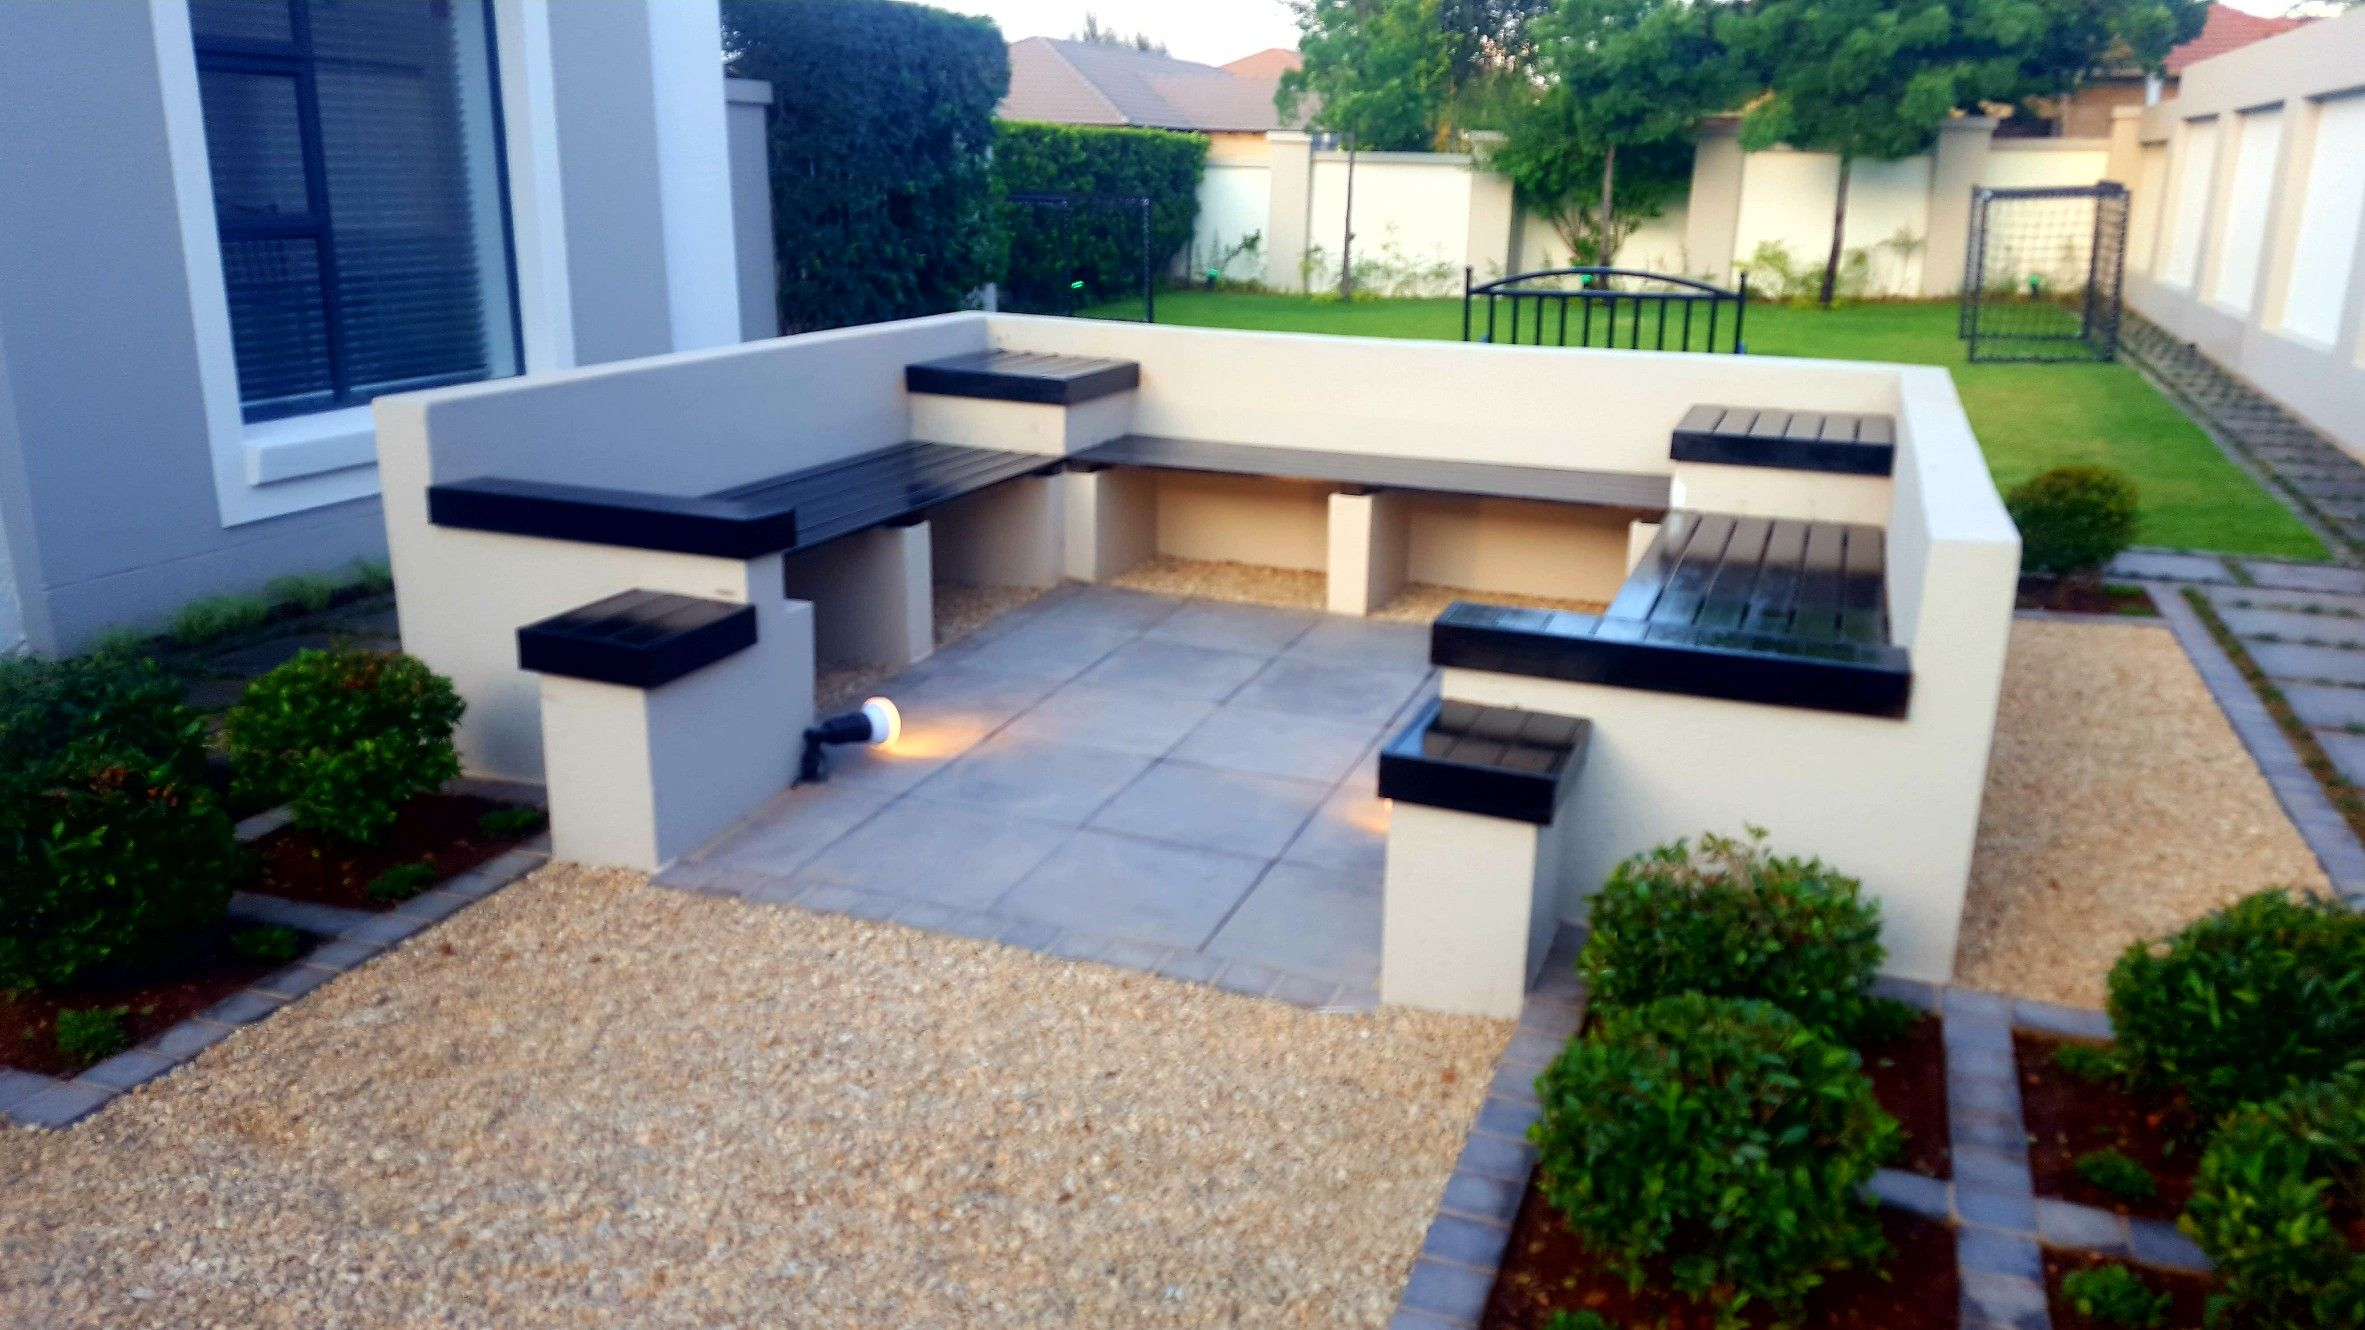 Contact Designer Gardens Landscaping to design and build ... on Modern Boma Ideas id=38567